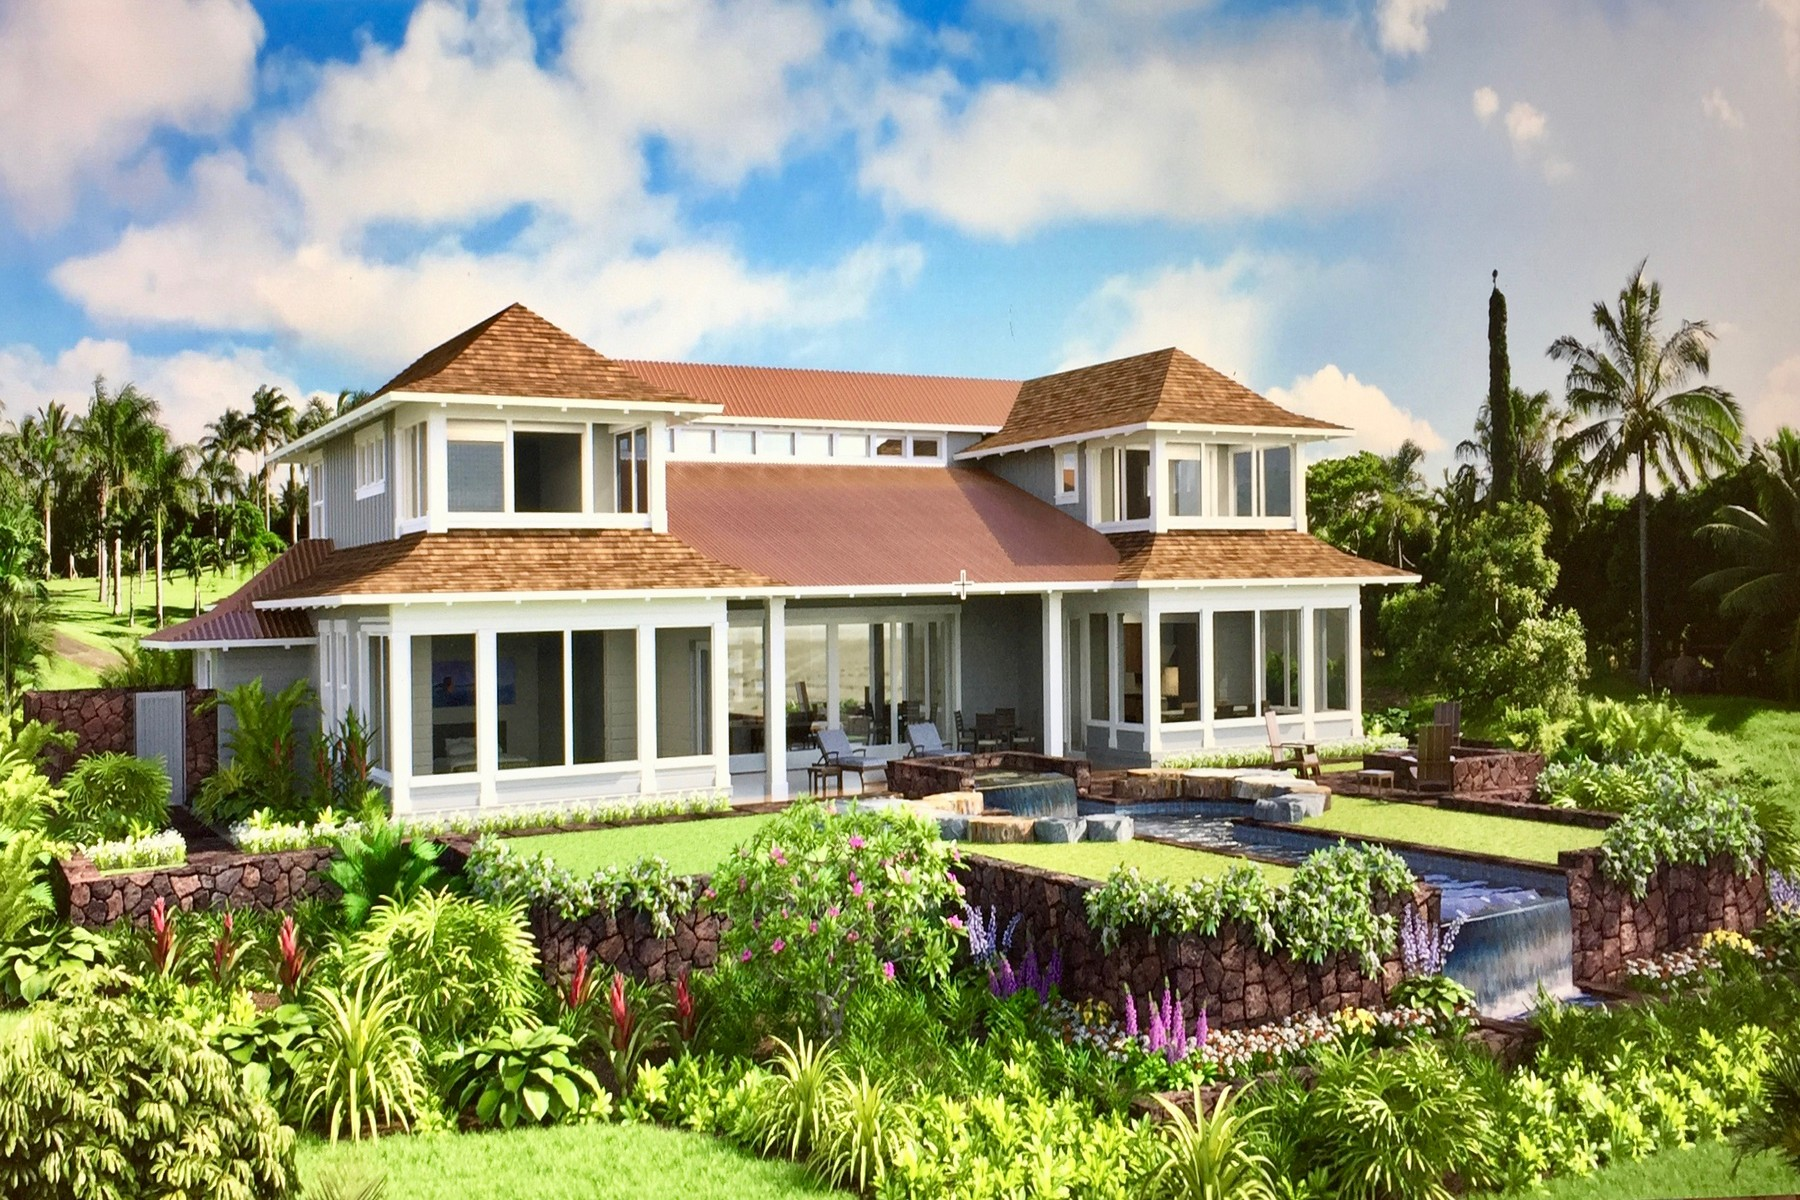 Частный односемейный дом для того Продажа на THE HAIKU HOUSE...Rare Ocean Front New Construction in Haiku, Maui 40 Hale Pili Way, Lot 15 Aina O Ka Hale Pili Haiku, Гавайи, 96708 Соединенные Штаты